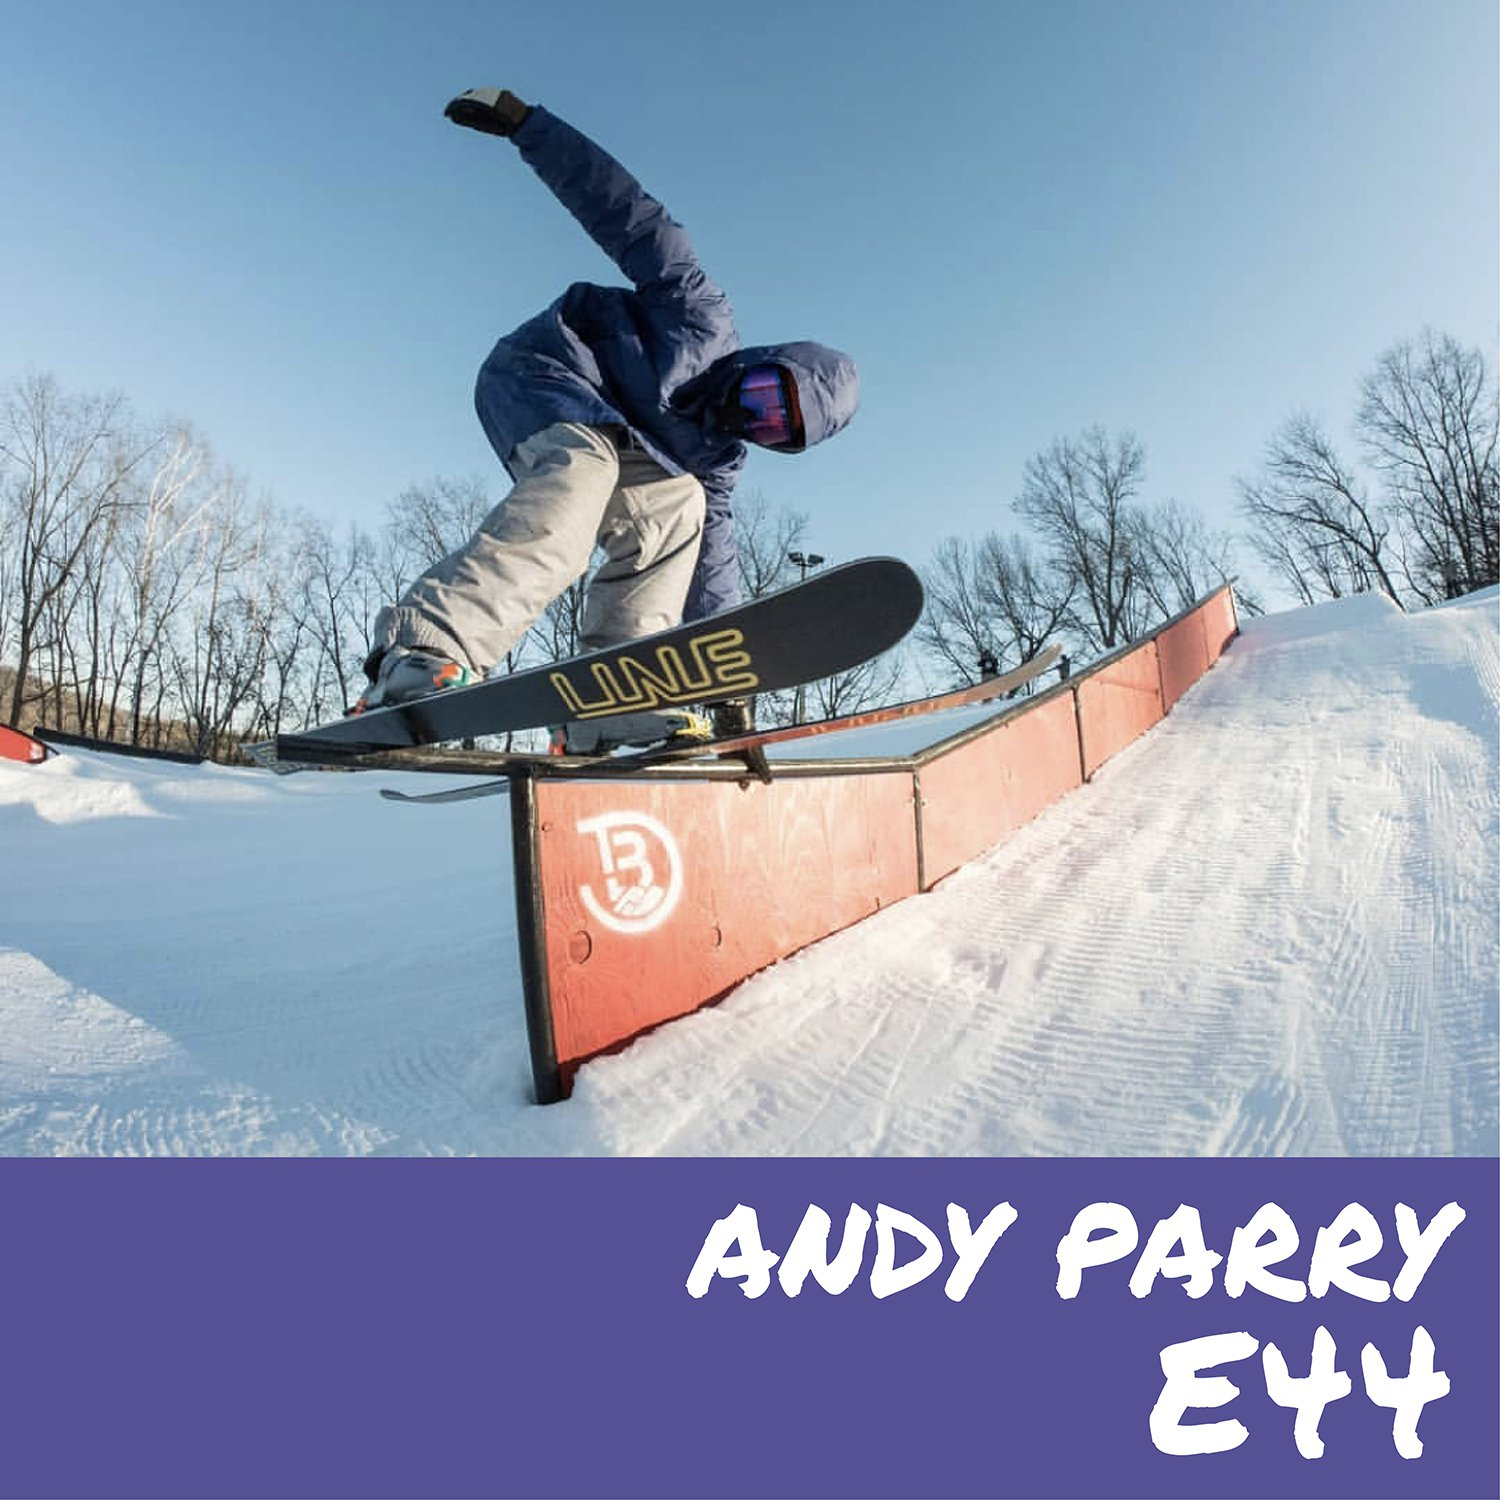 Andy Parry is for the Kids, and Adults